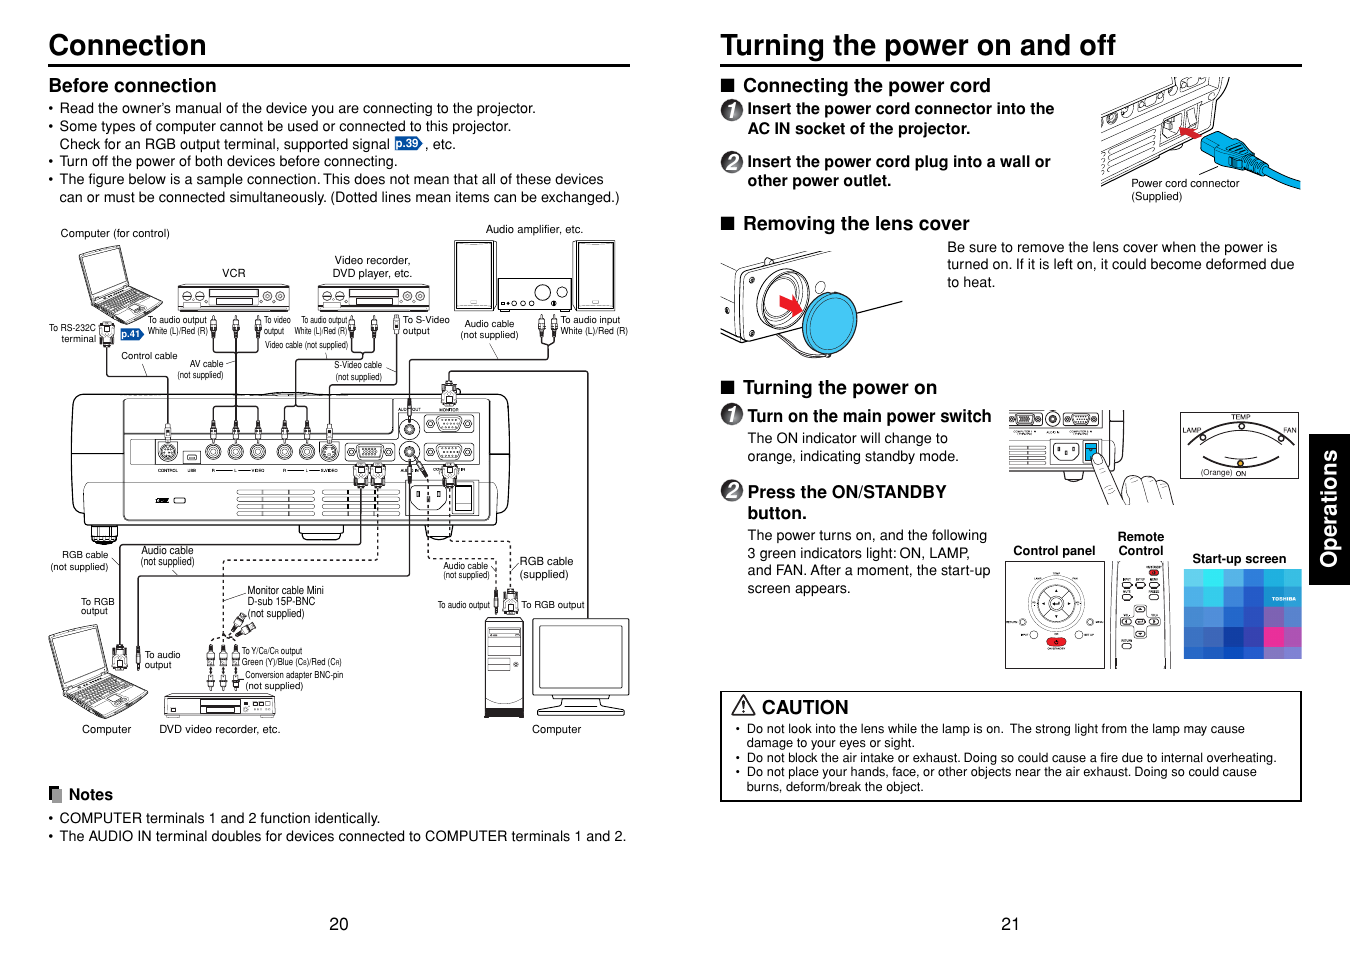 Connection Operations Turning The Power On And Off Toshiba Tdp Connector Wiring Diagram T98 User Manual Page 11 22